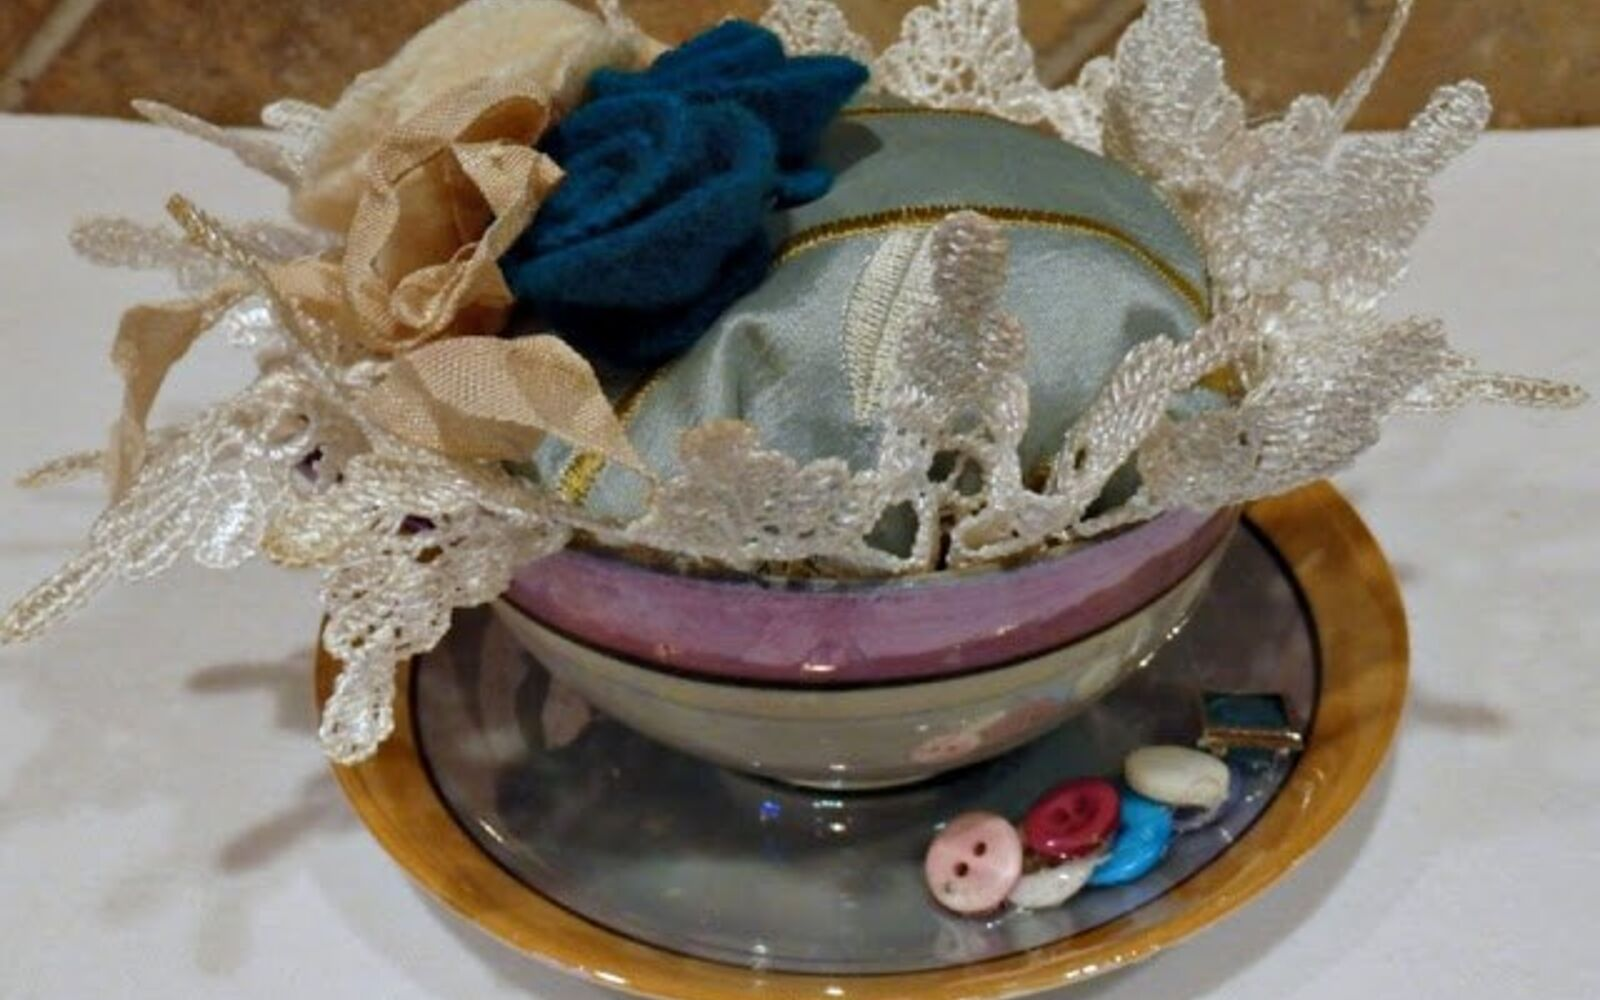 s don t ditch your broken teacups til you see what people do with them, repurposing upcycling, Set a cushion in a cup as cute sewing couture